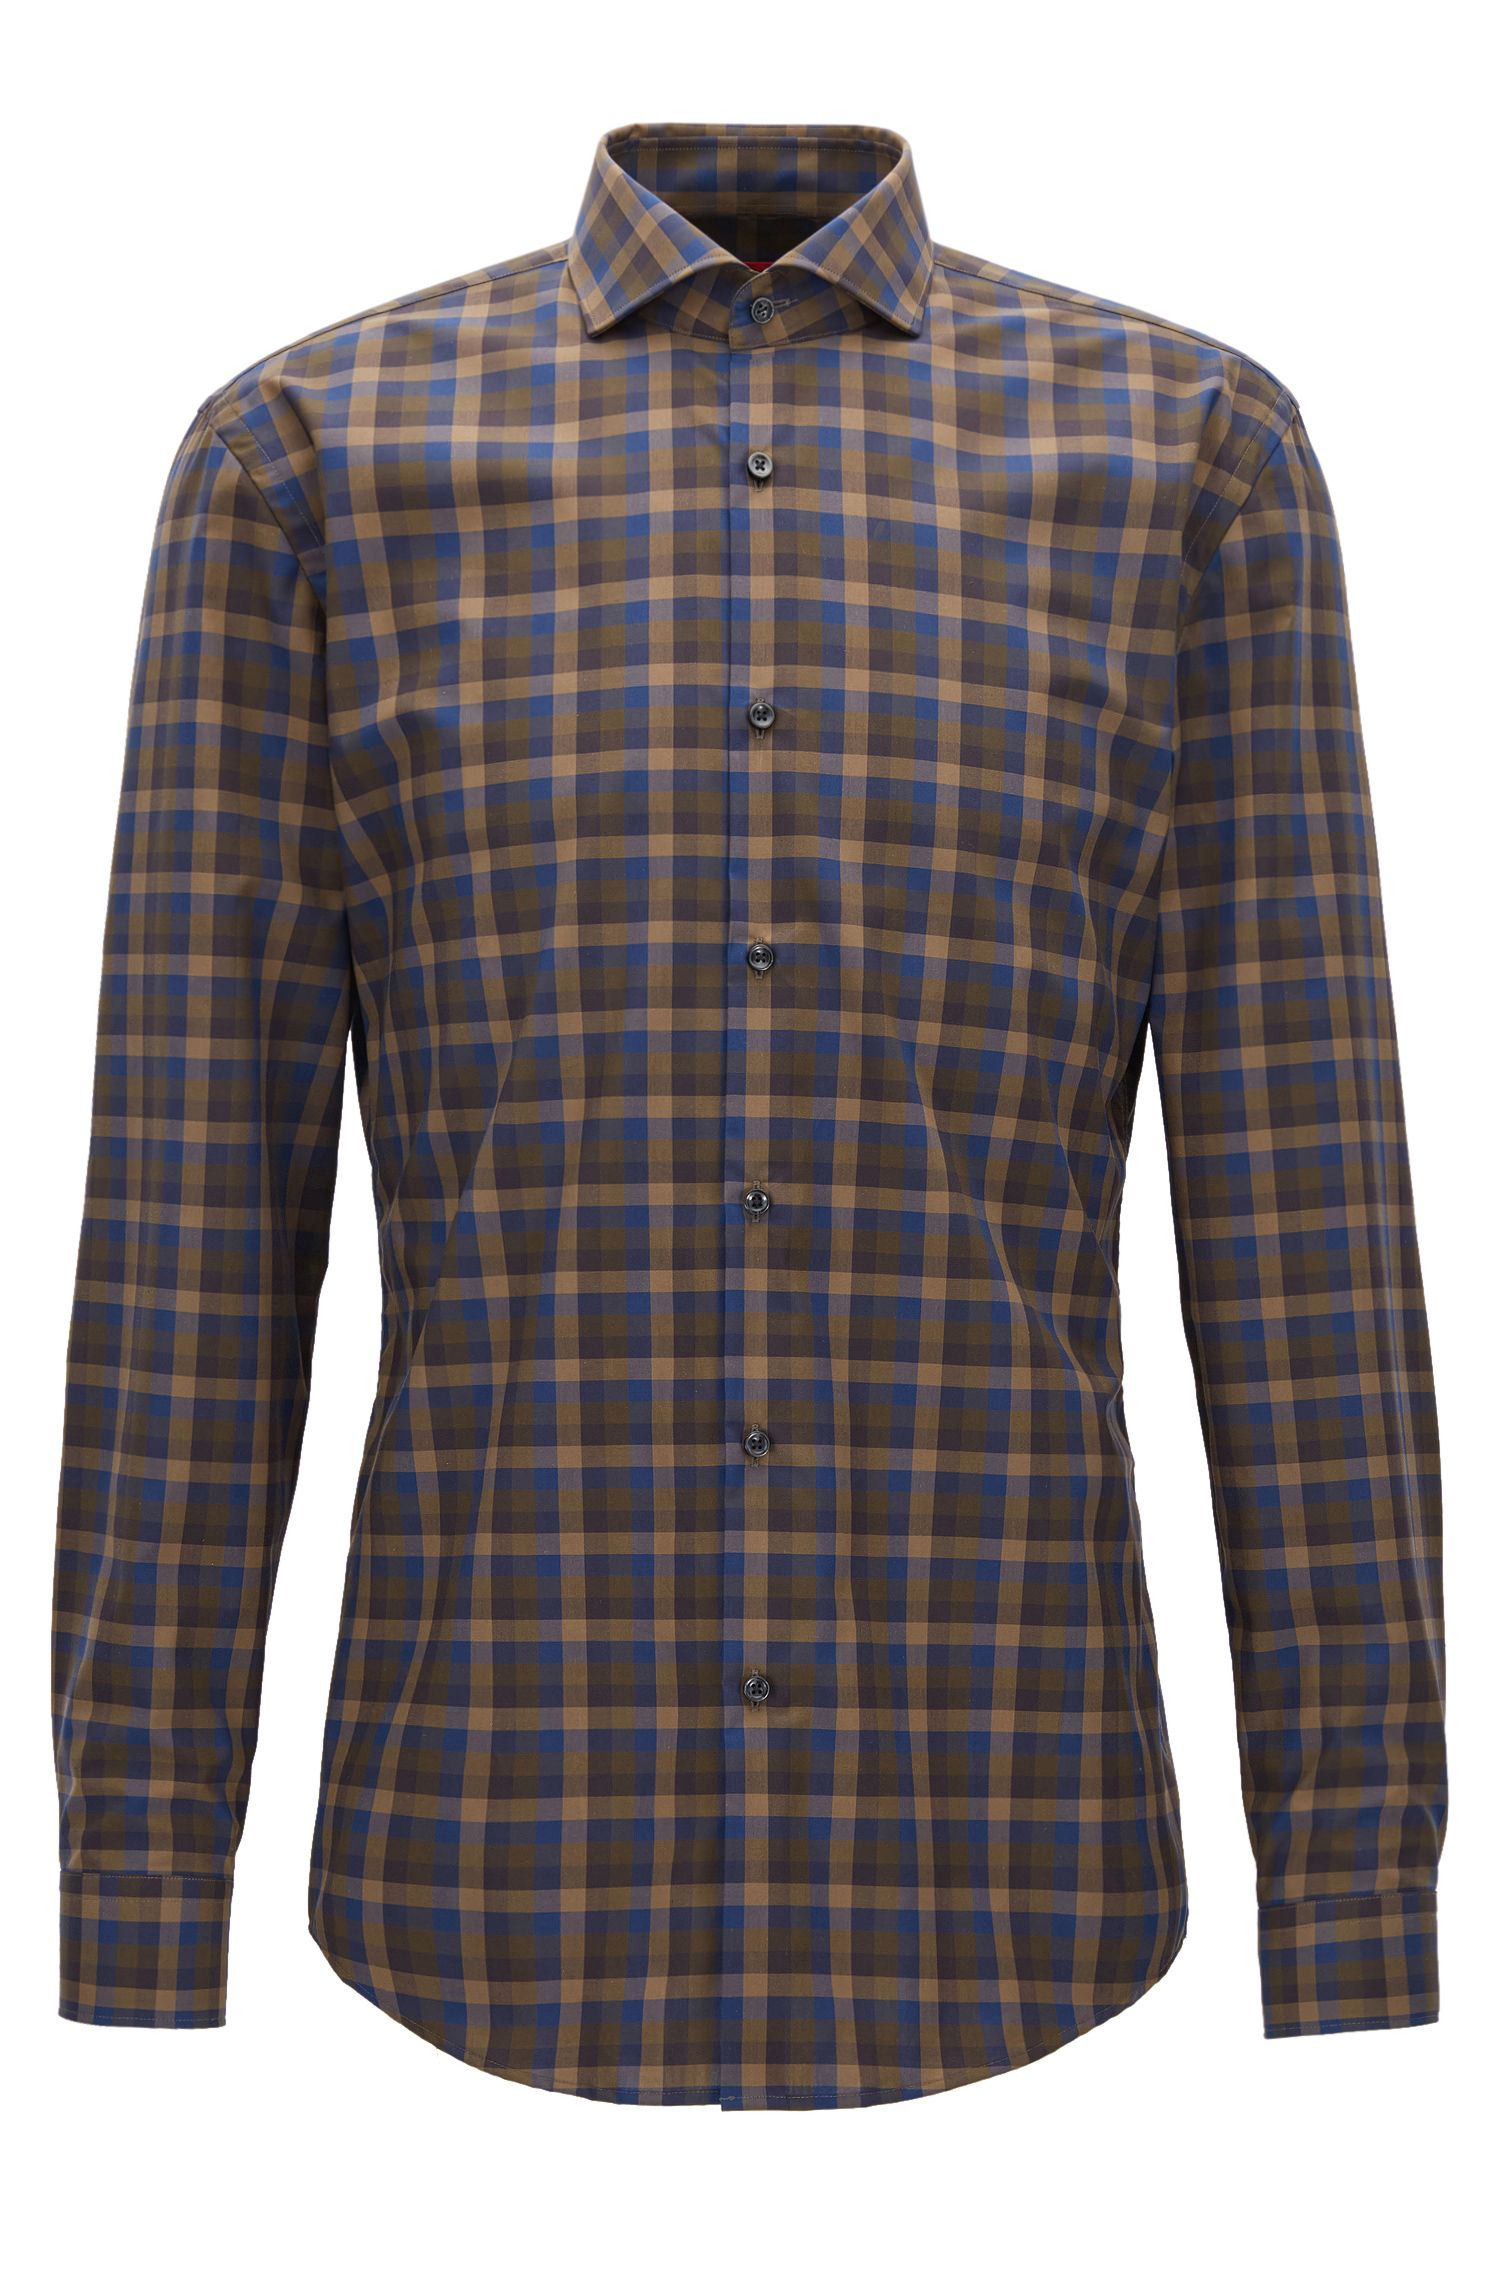 Slim-fit multi-coloured Vichy check shirt in cotton poplin